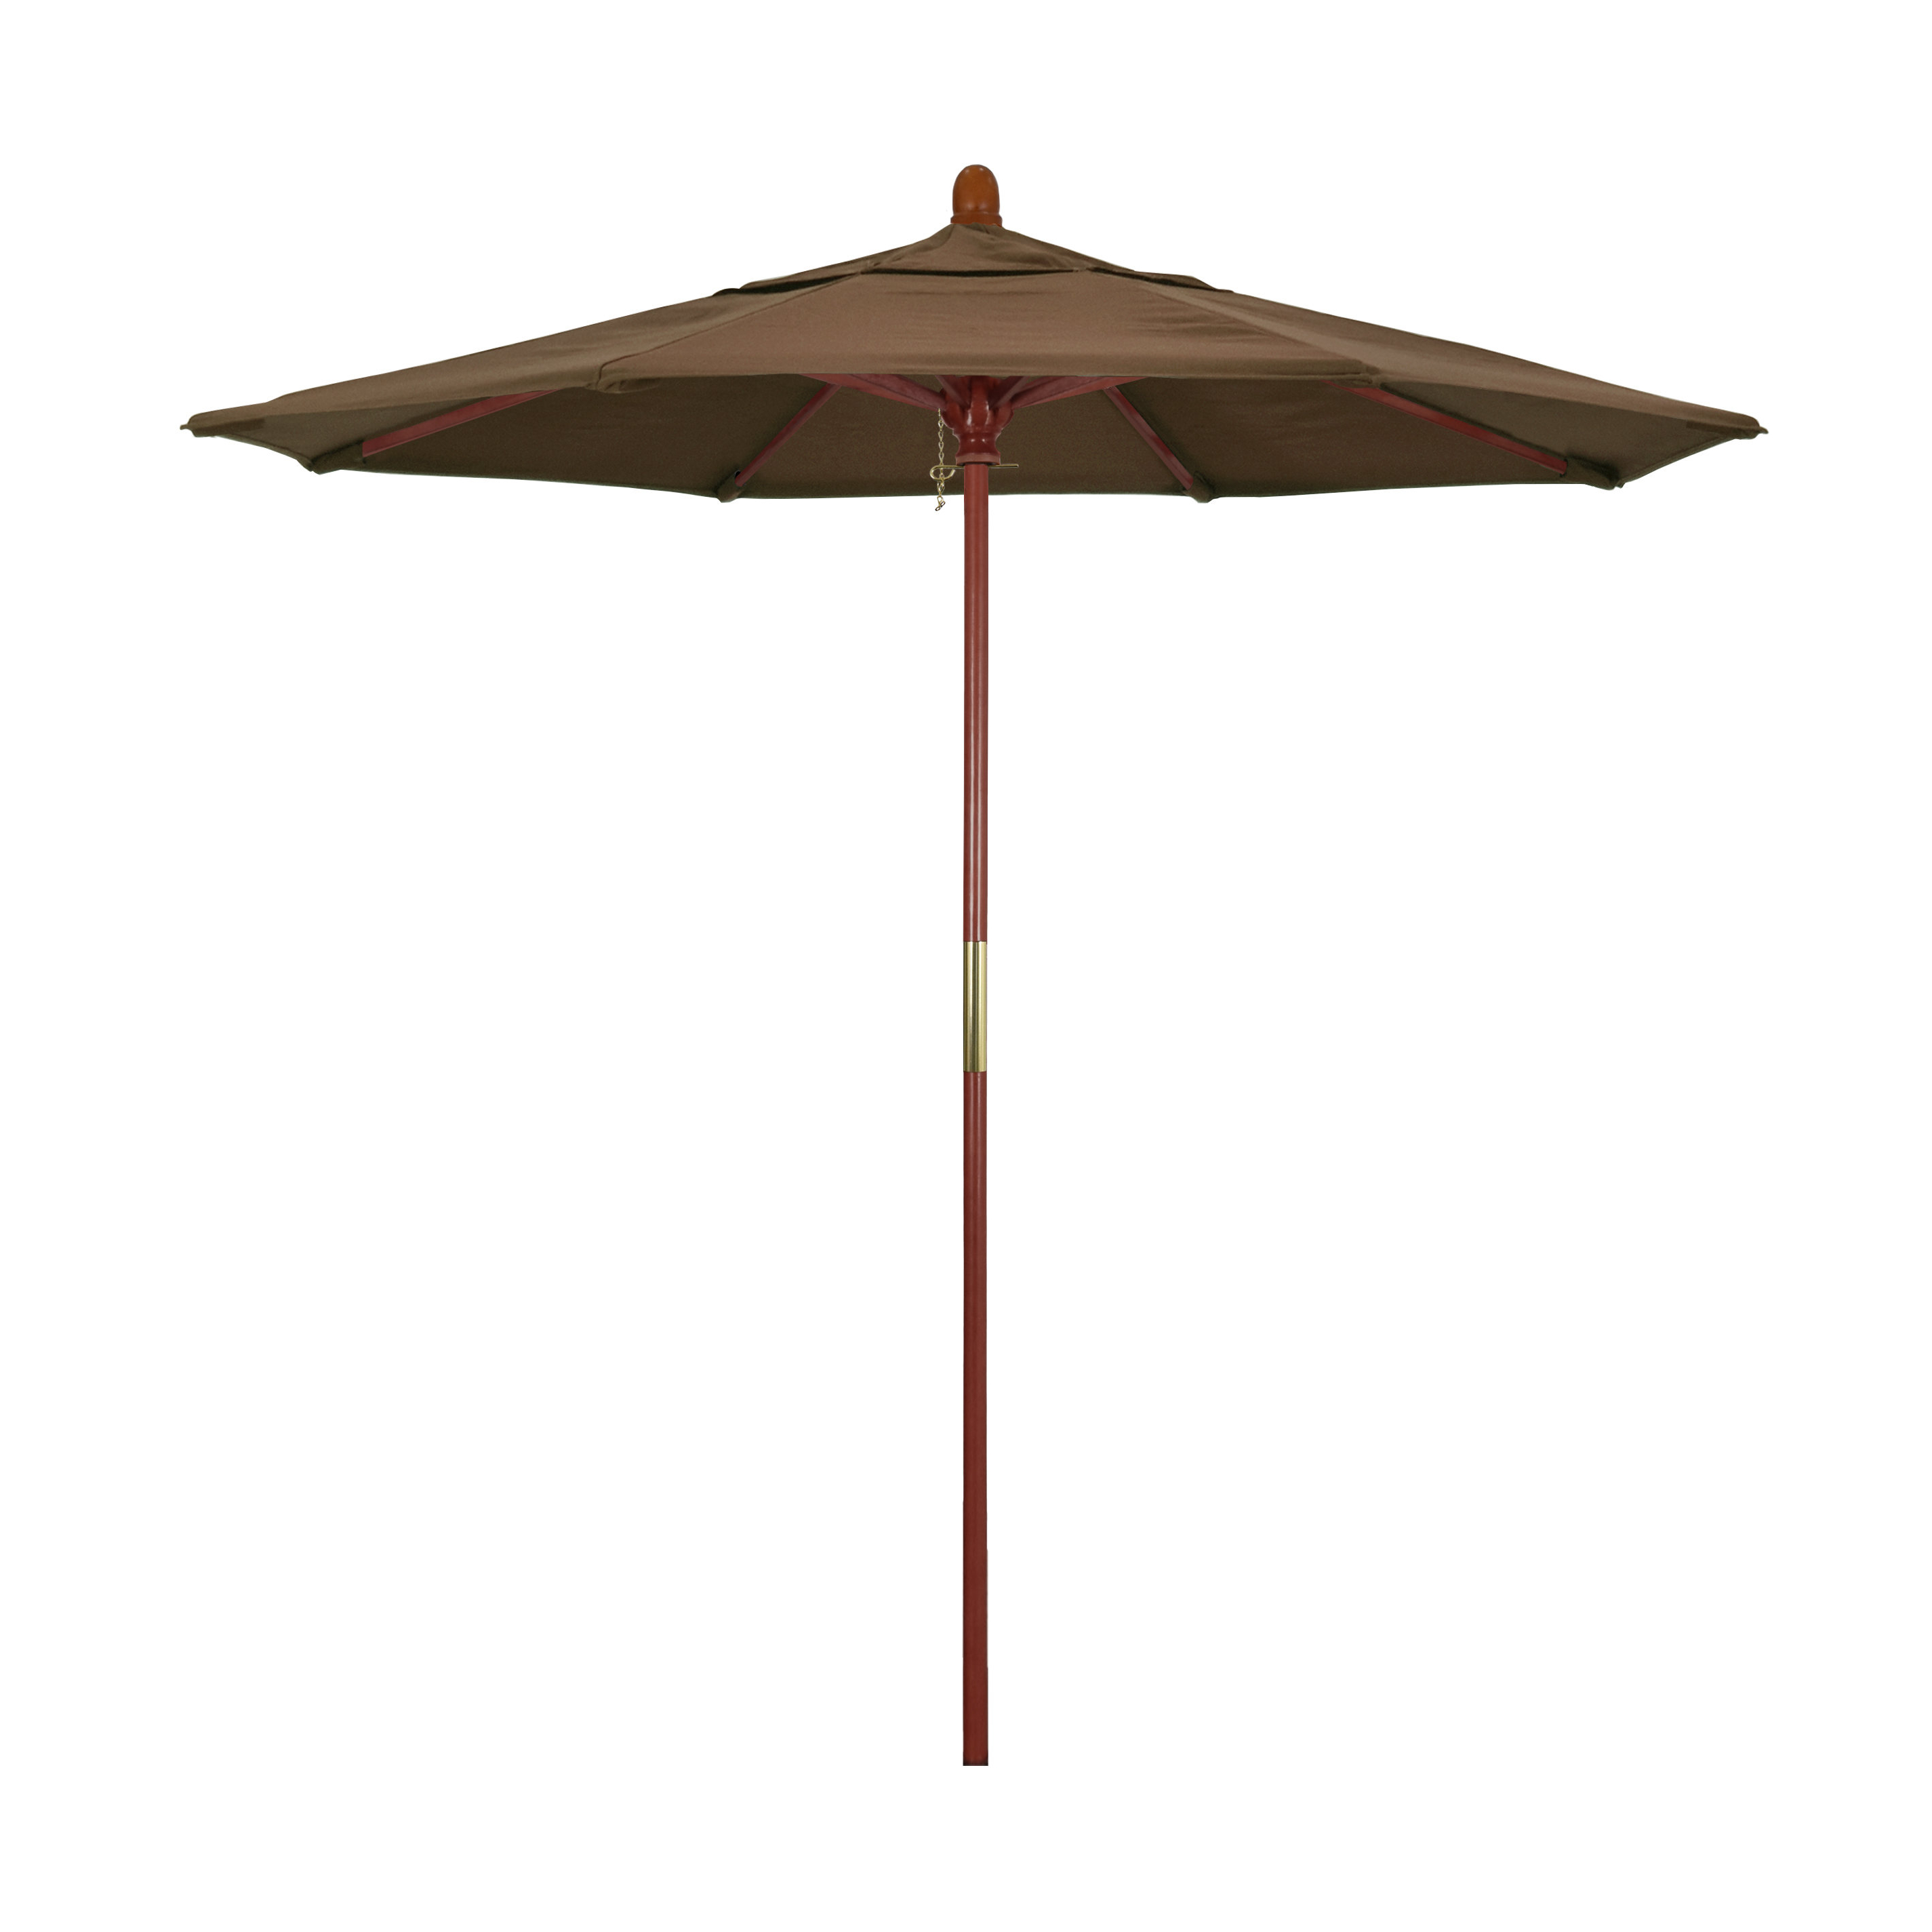 Caravelle Market Umbrellas Regarding Well Known Mraz (View 16 of 20)